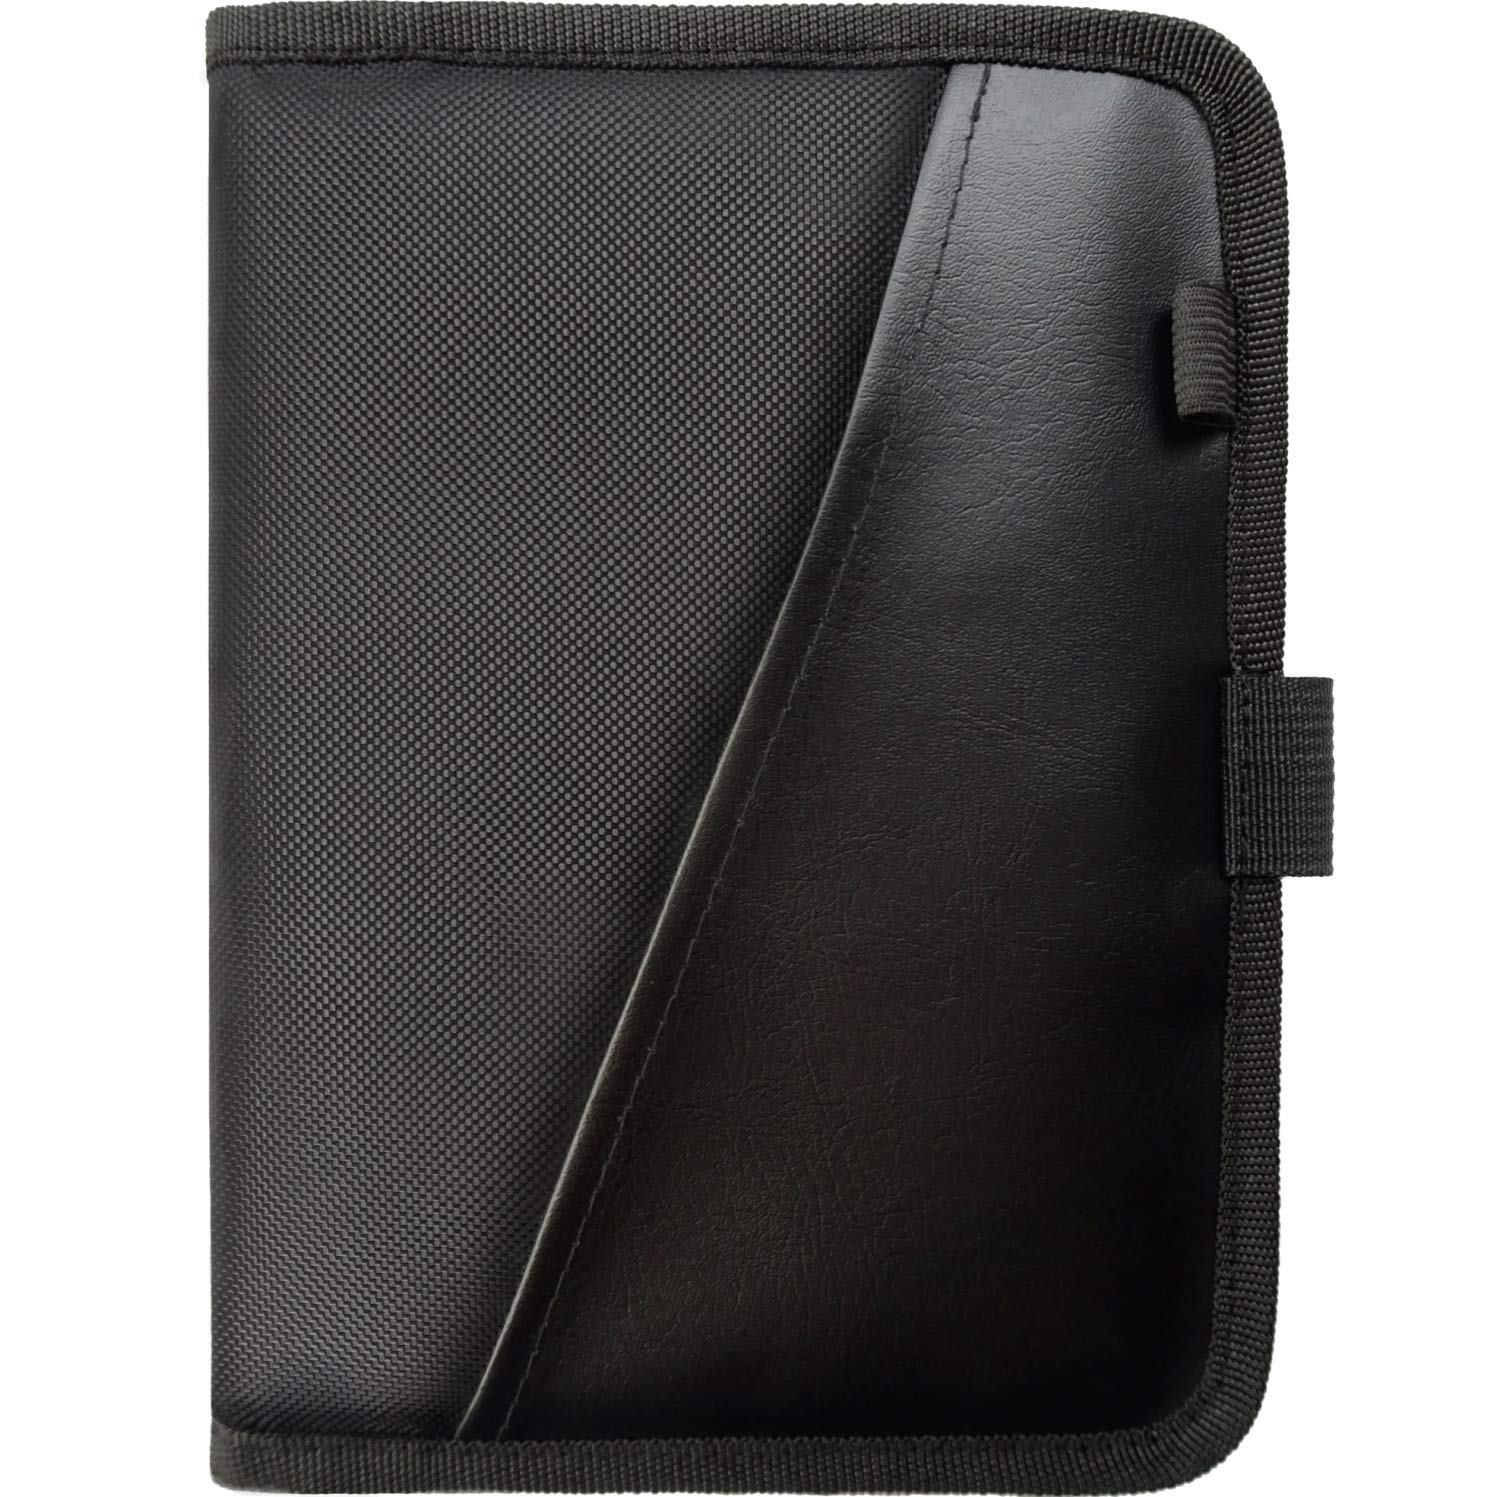 Glove Box Compartment Organizer ~ Car Document Holder ~ Owner Manual Case Pouch ~ Vehicle Storage Wallet for Registration & Insurance Card ~ Premium Auto Paperwork Holder ~ Log Book included